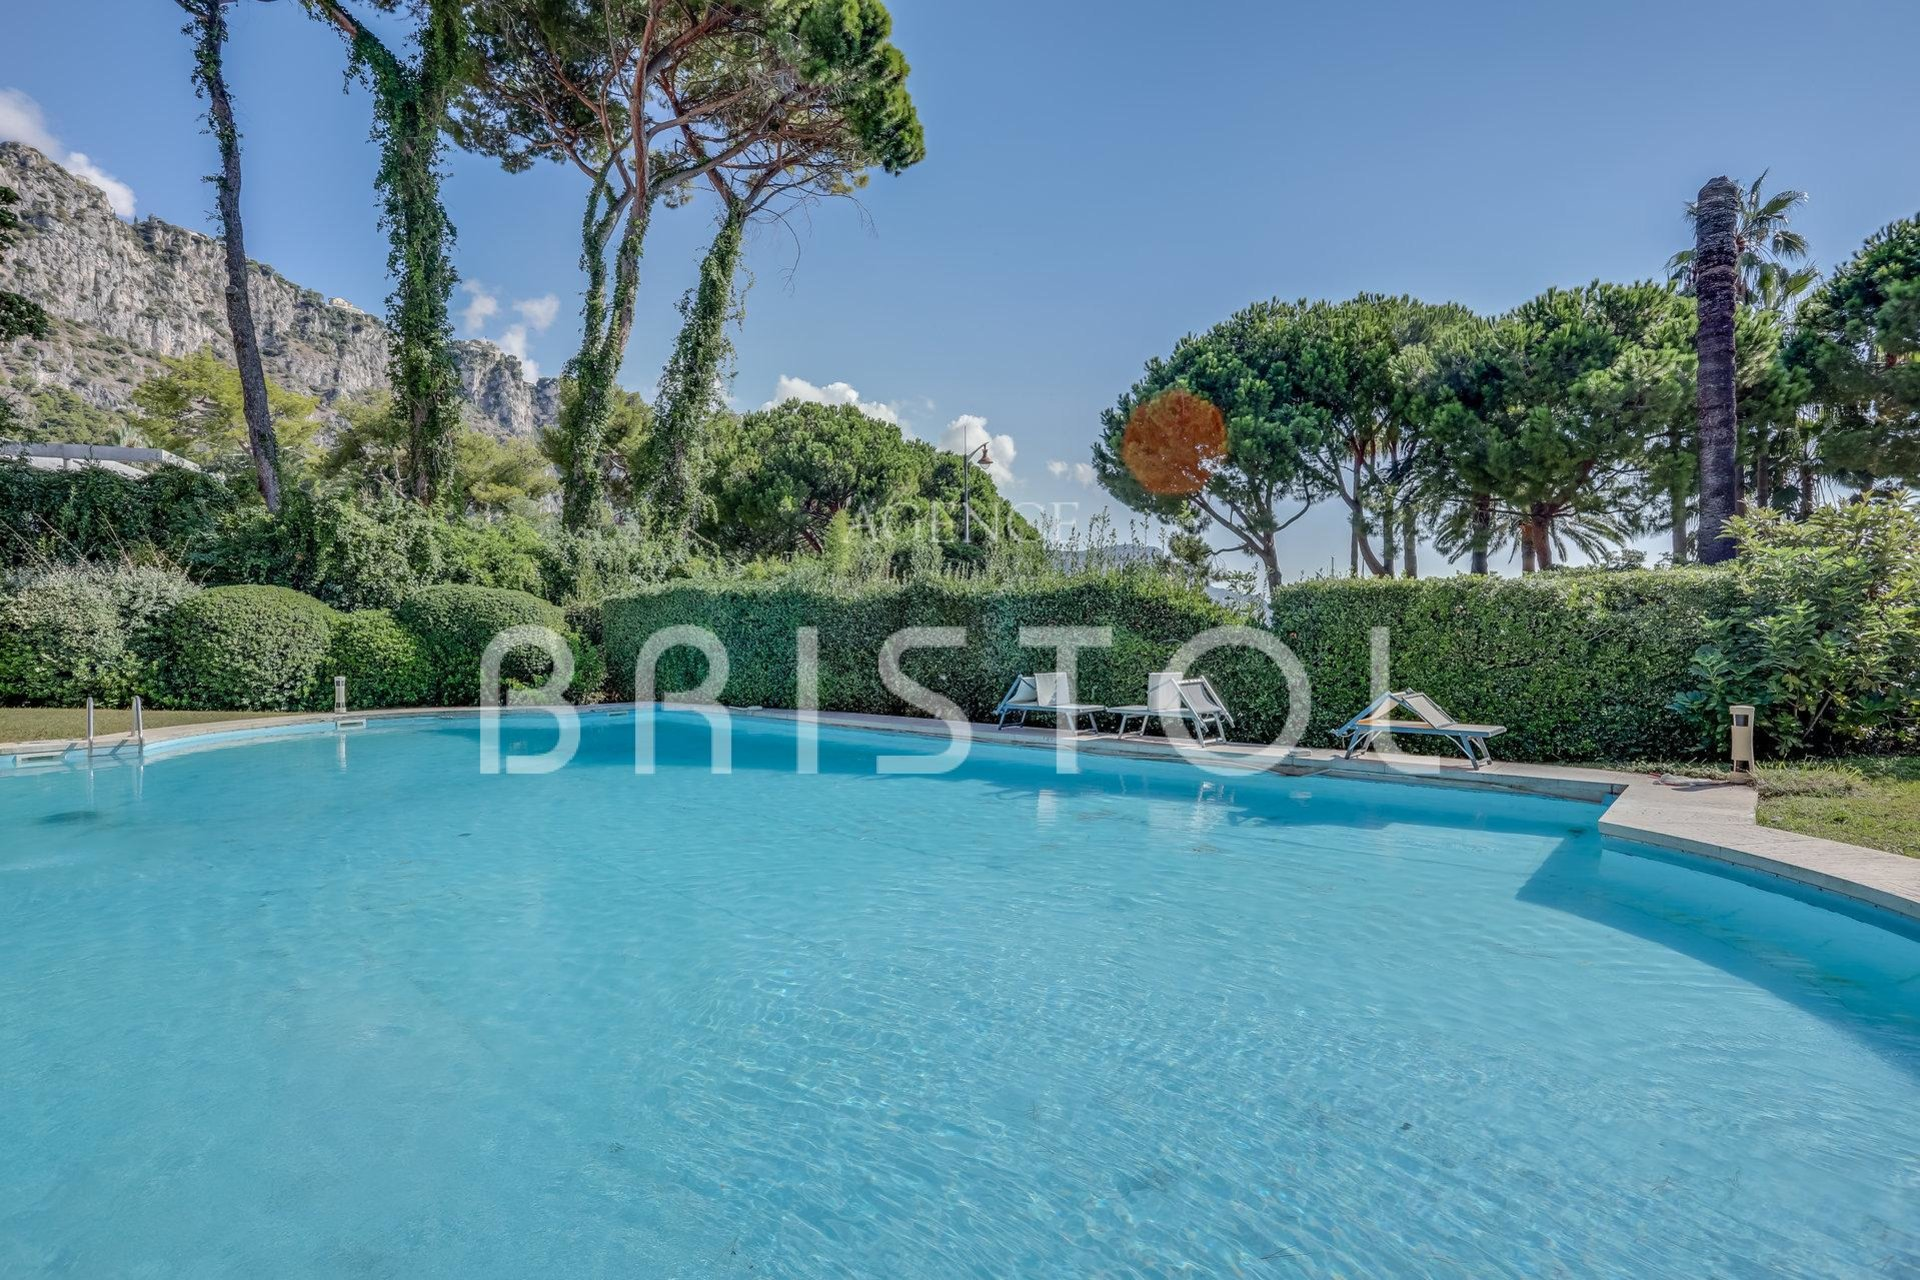 Apartment-villa in Beaulieu sur Mer close to the sea